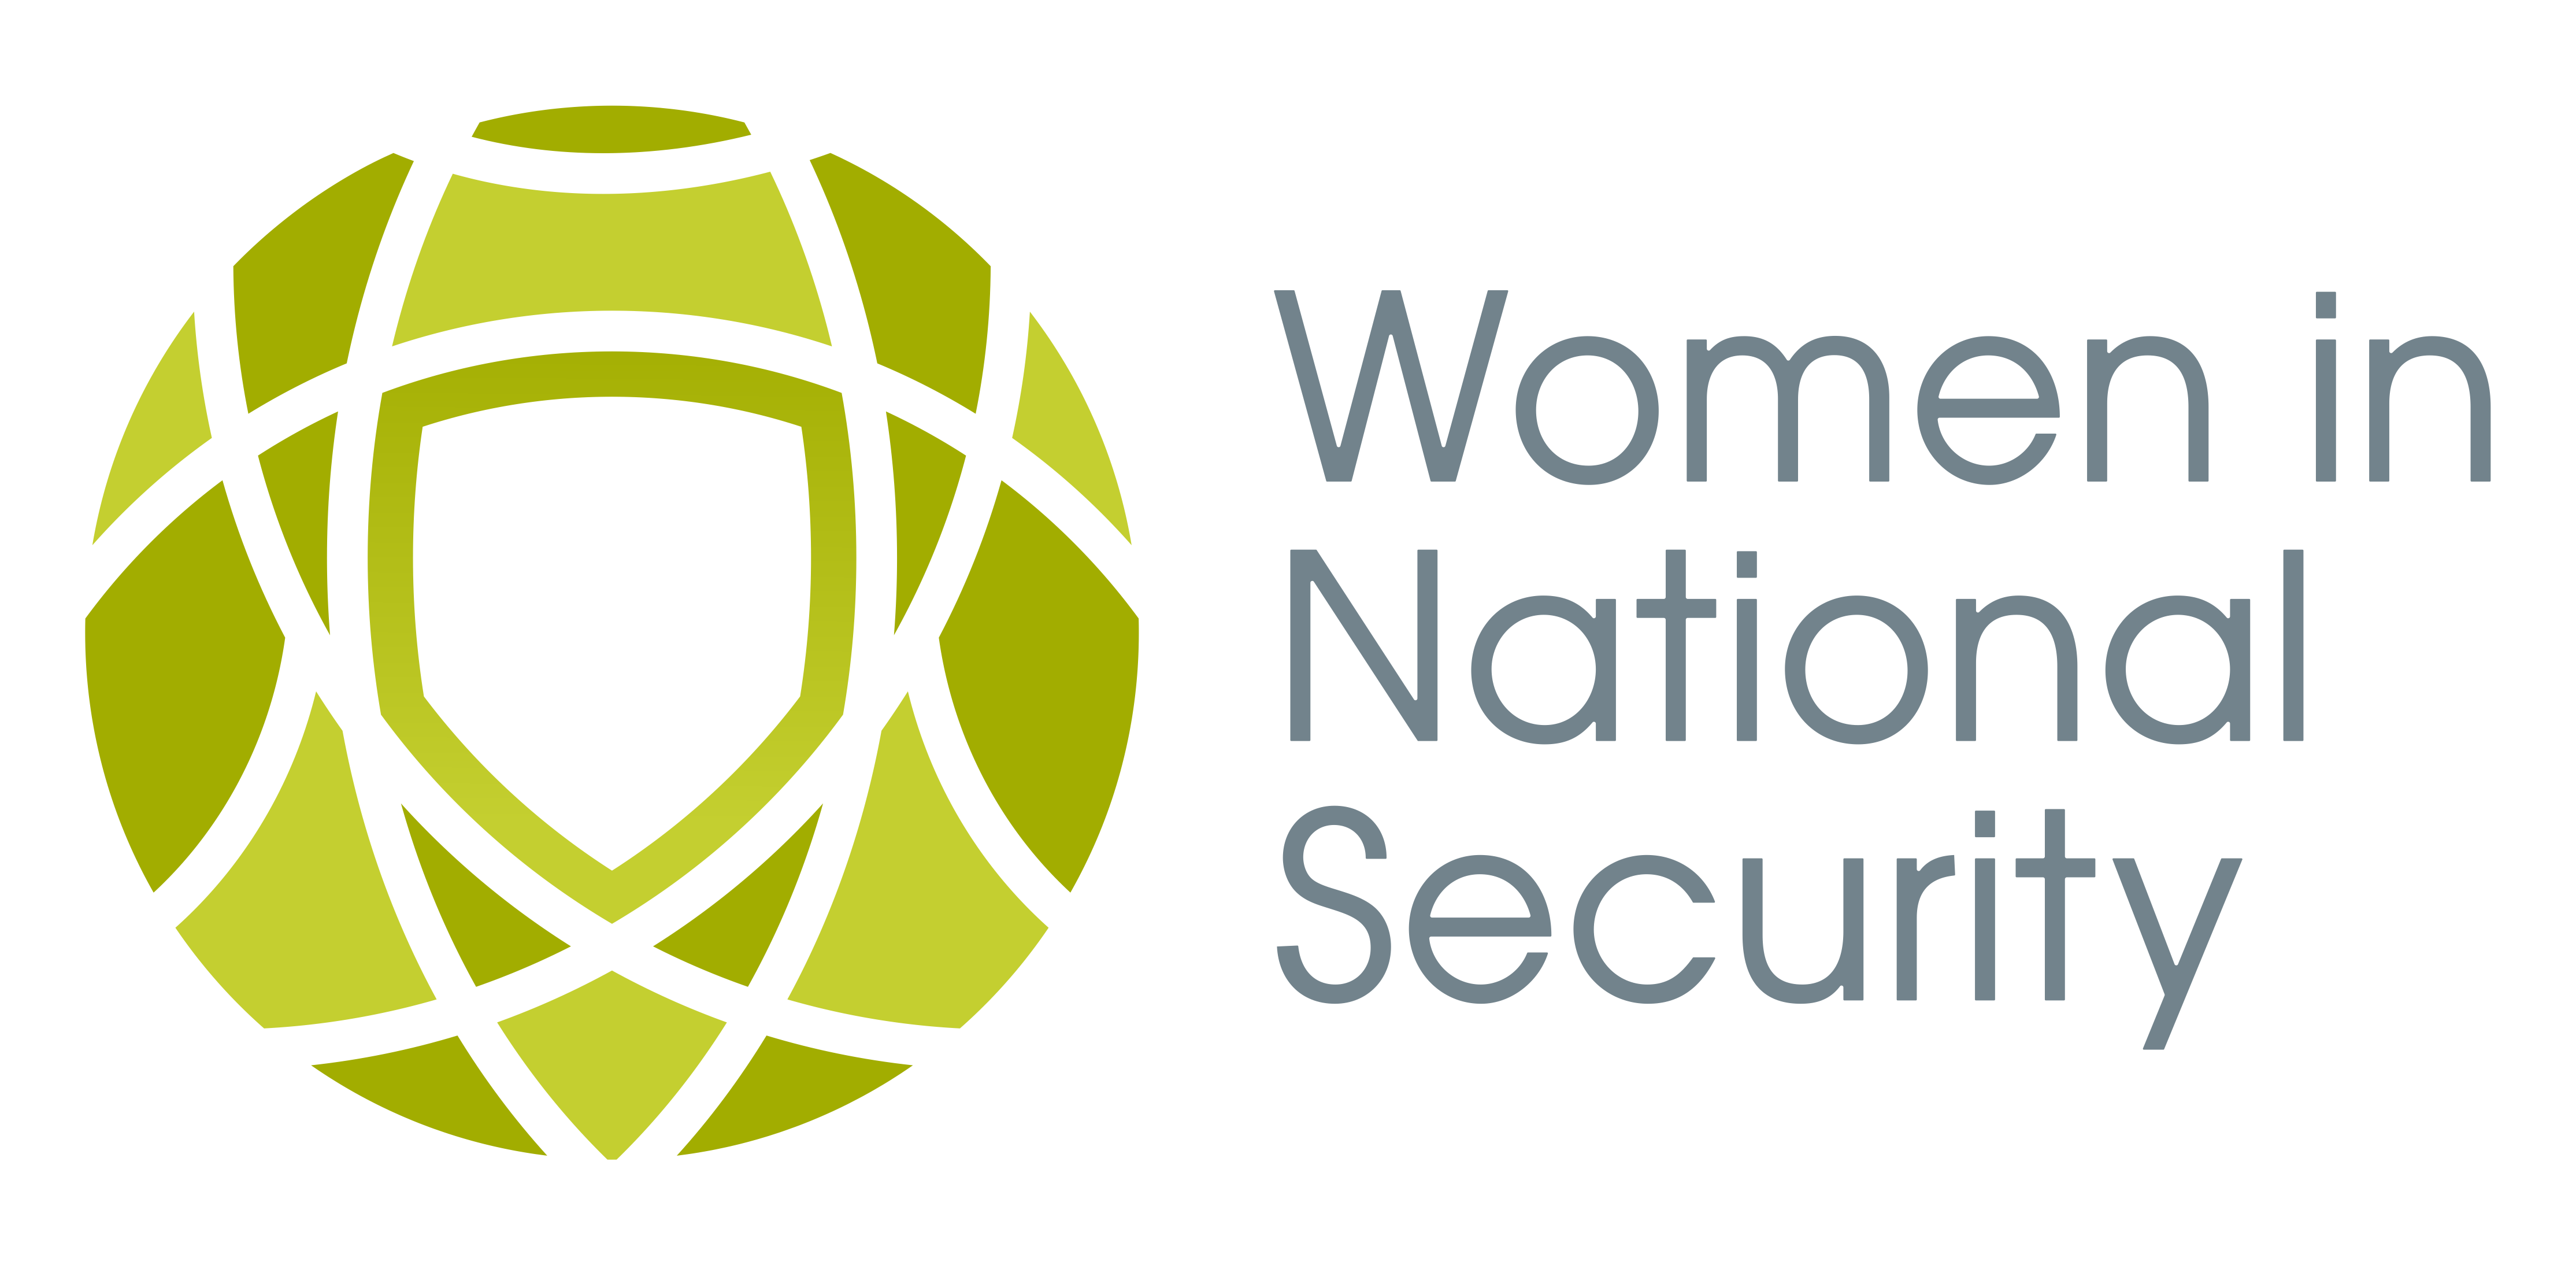 Design a logo for annual conference - Women in National Security